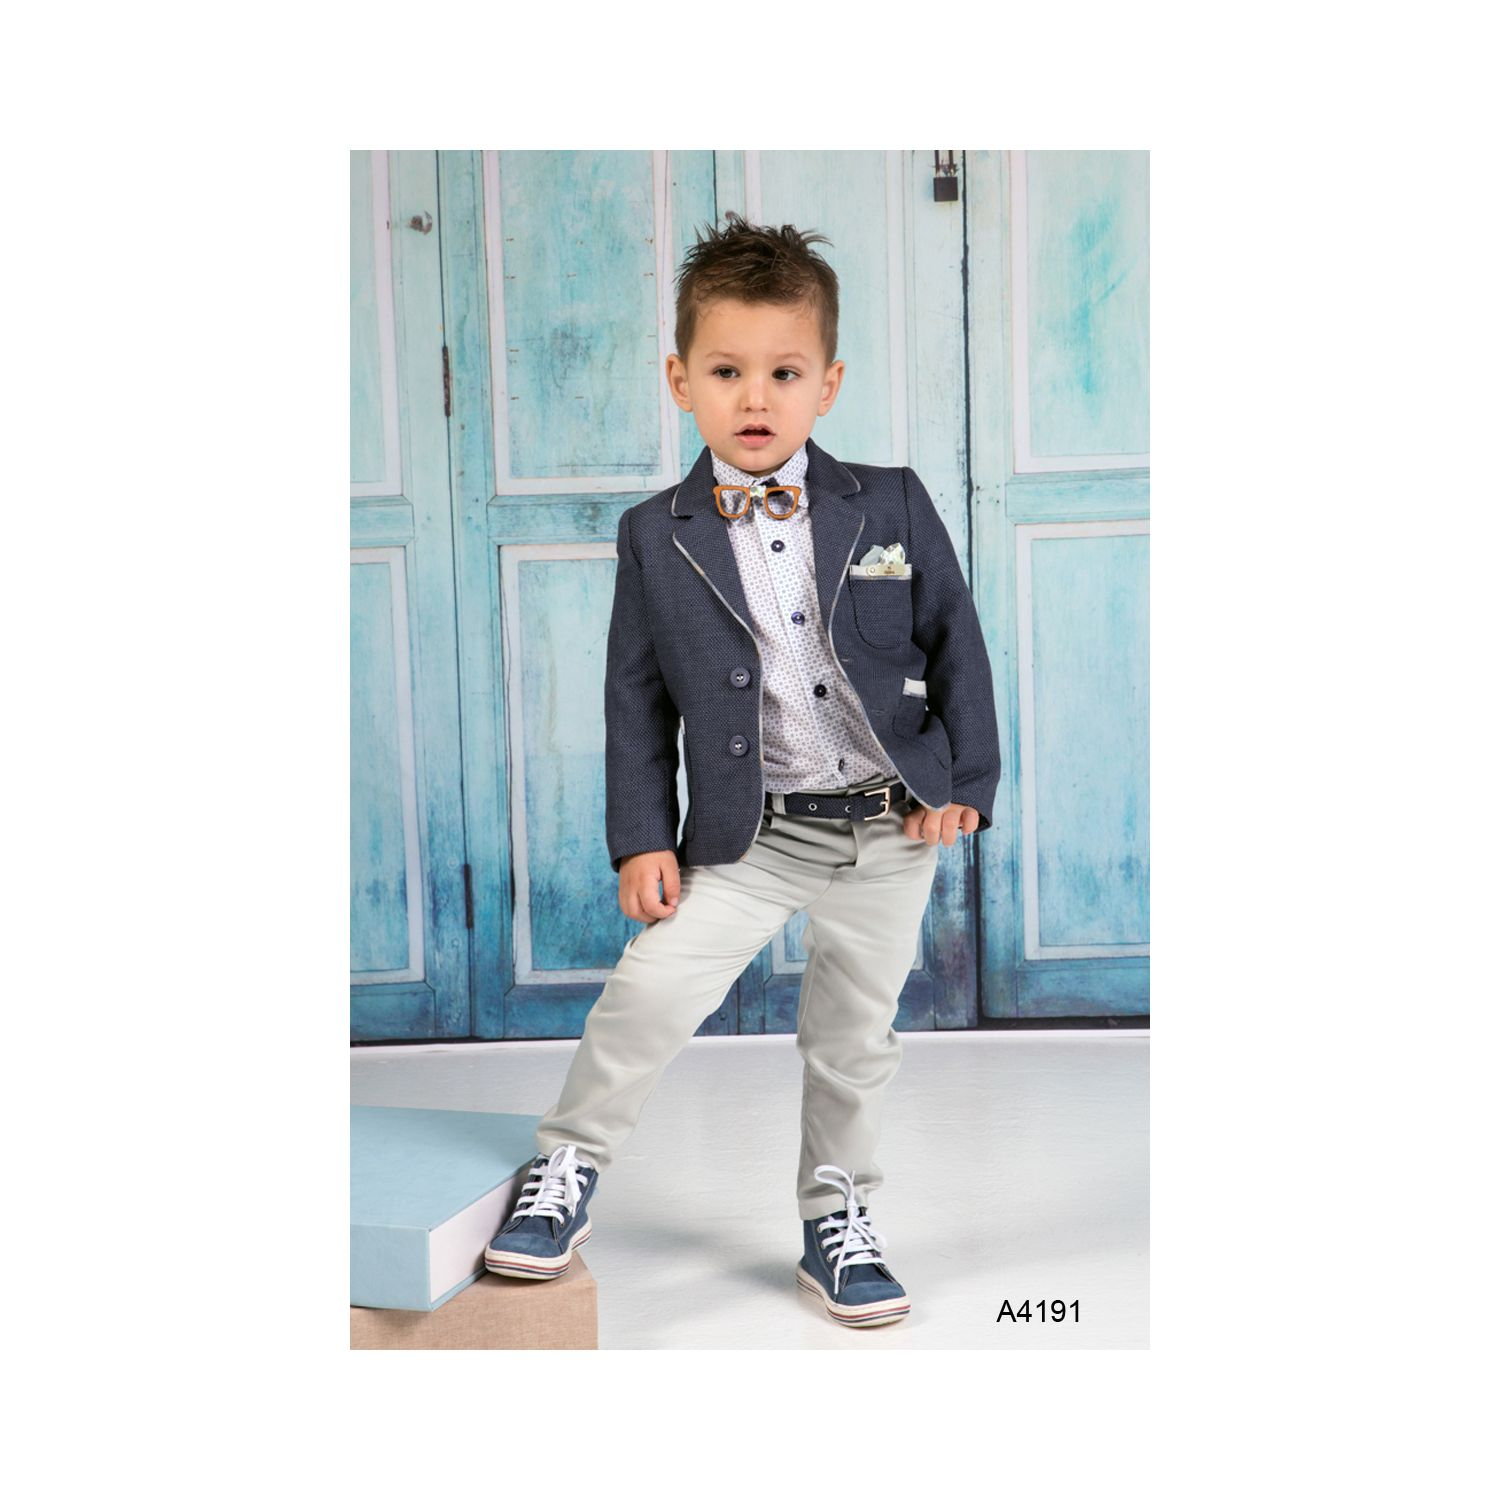 Contemporary  baptism suit for boys A4191